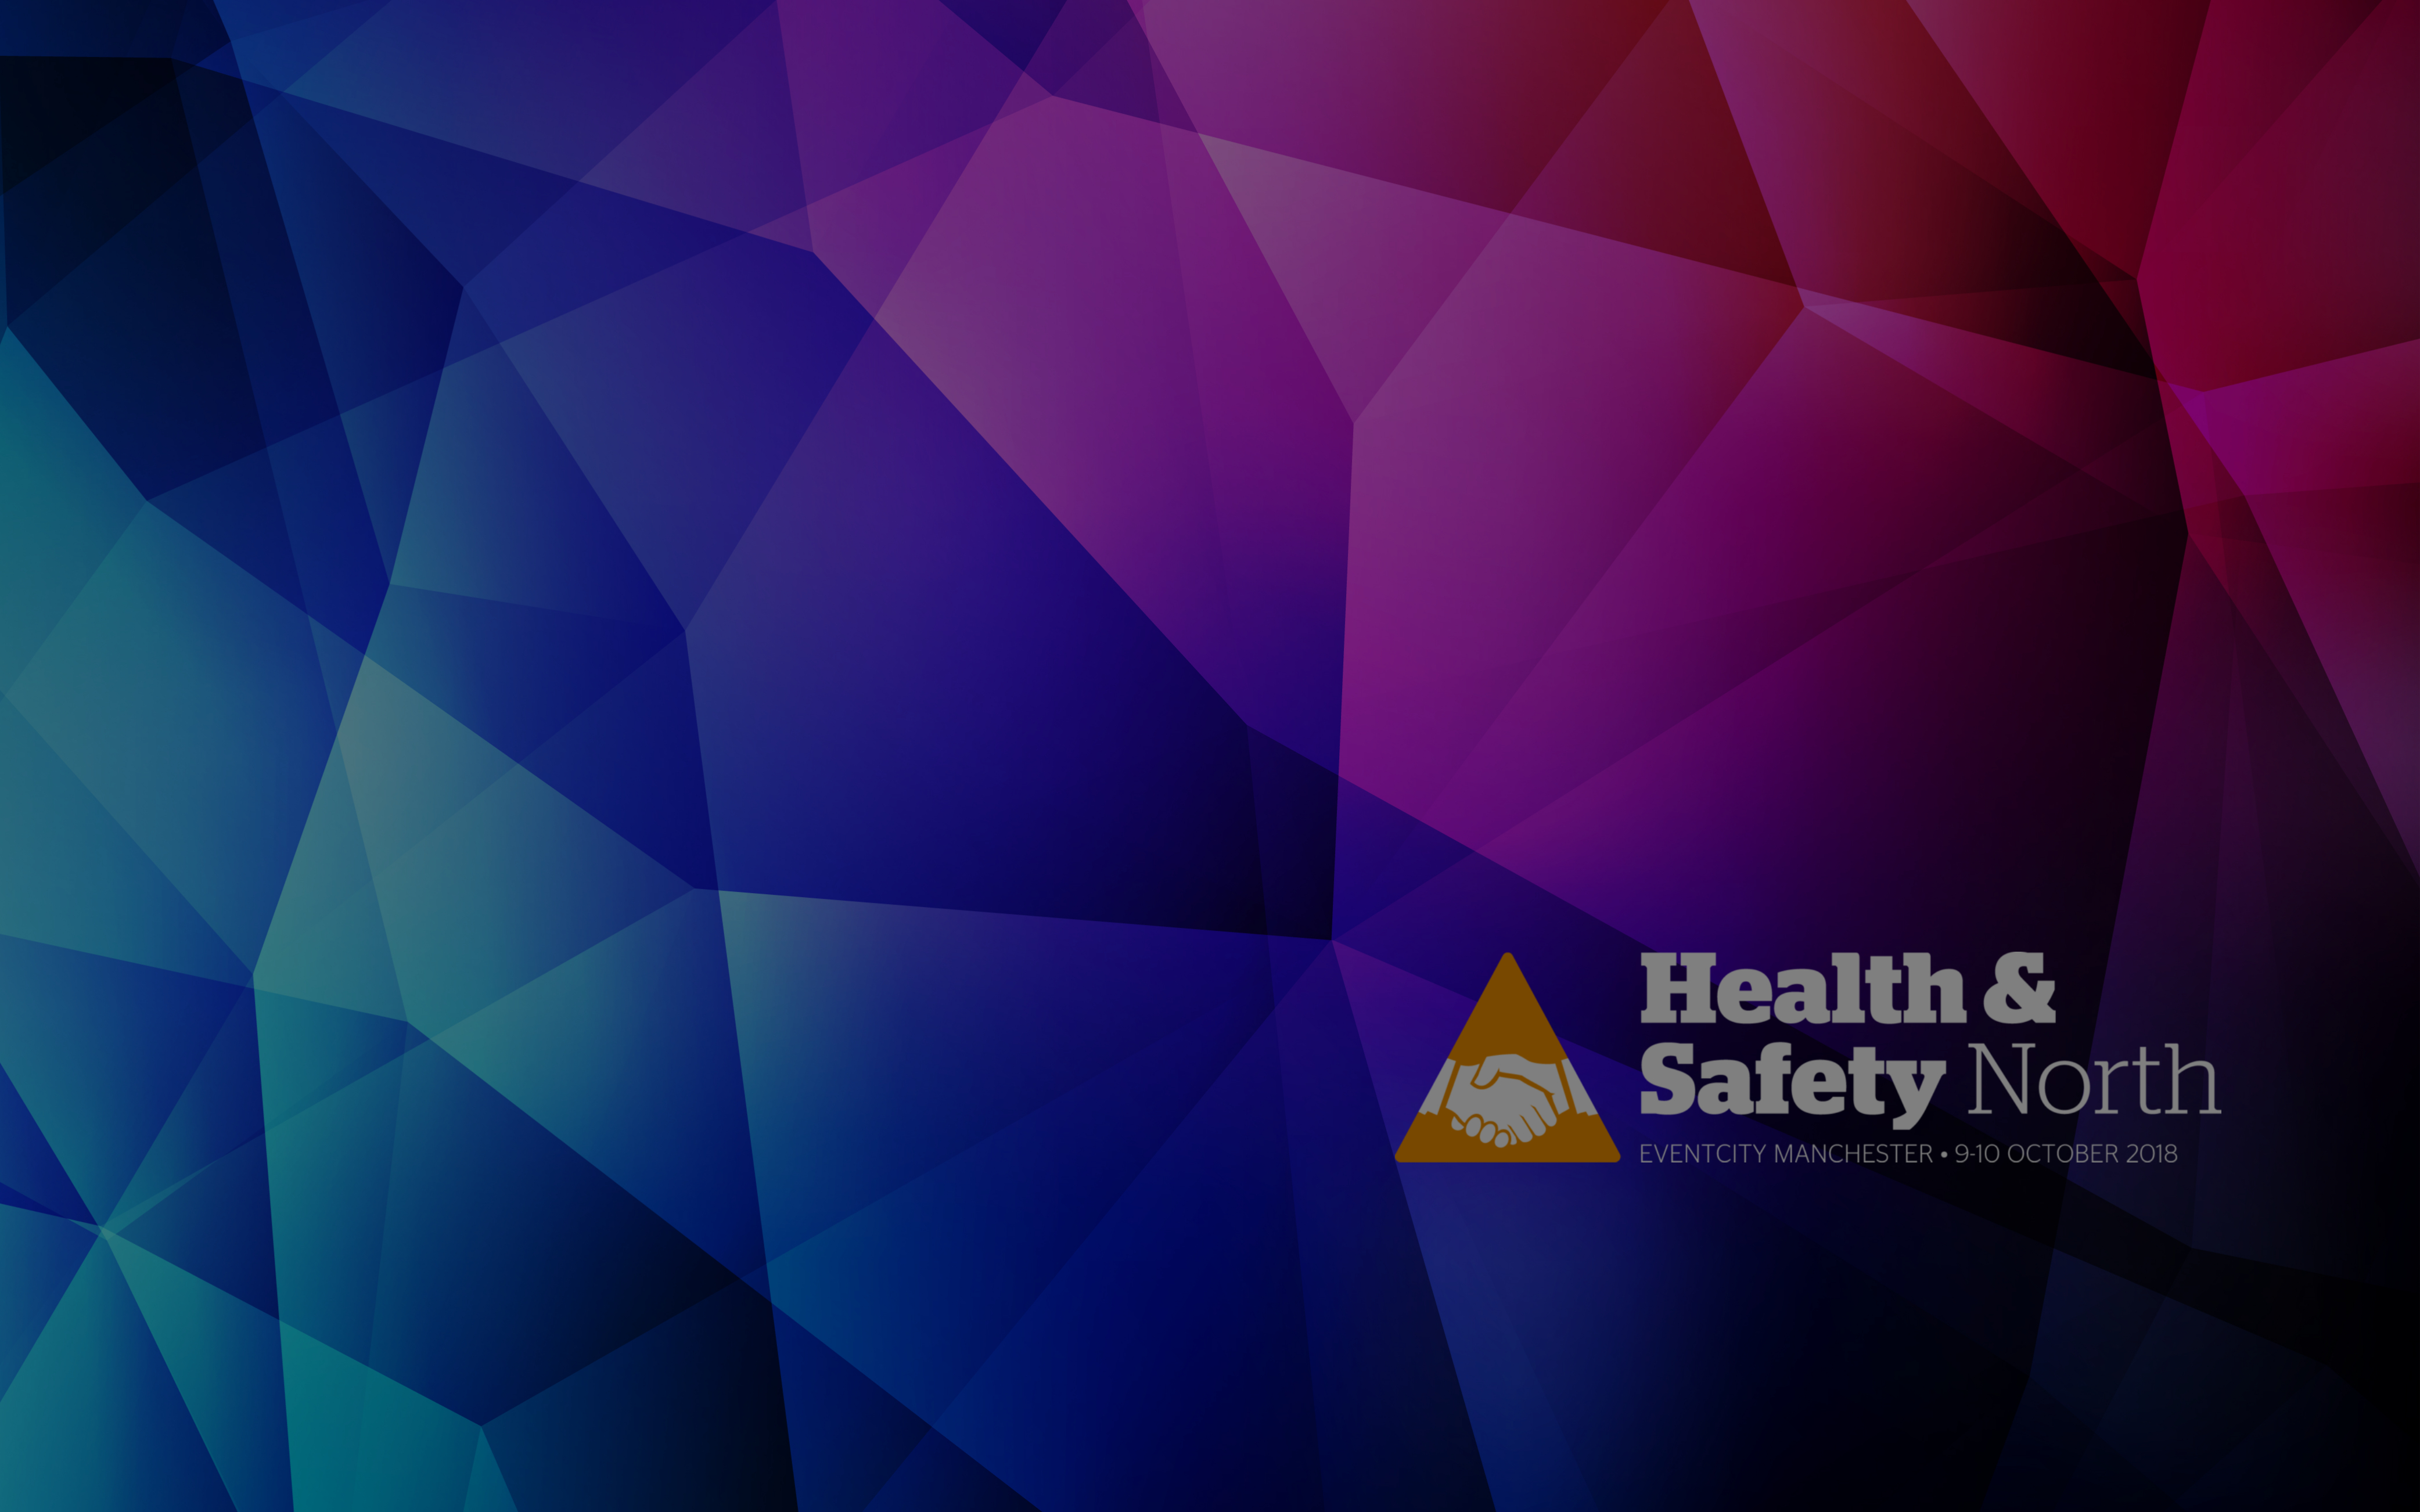 The Health and Safety North 2018 - What A Show!